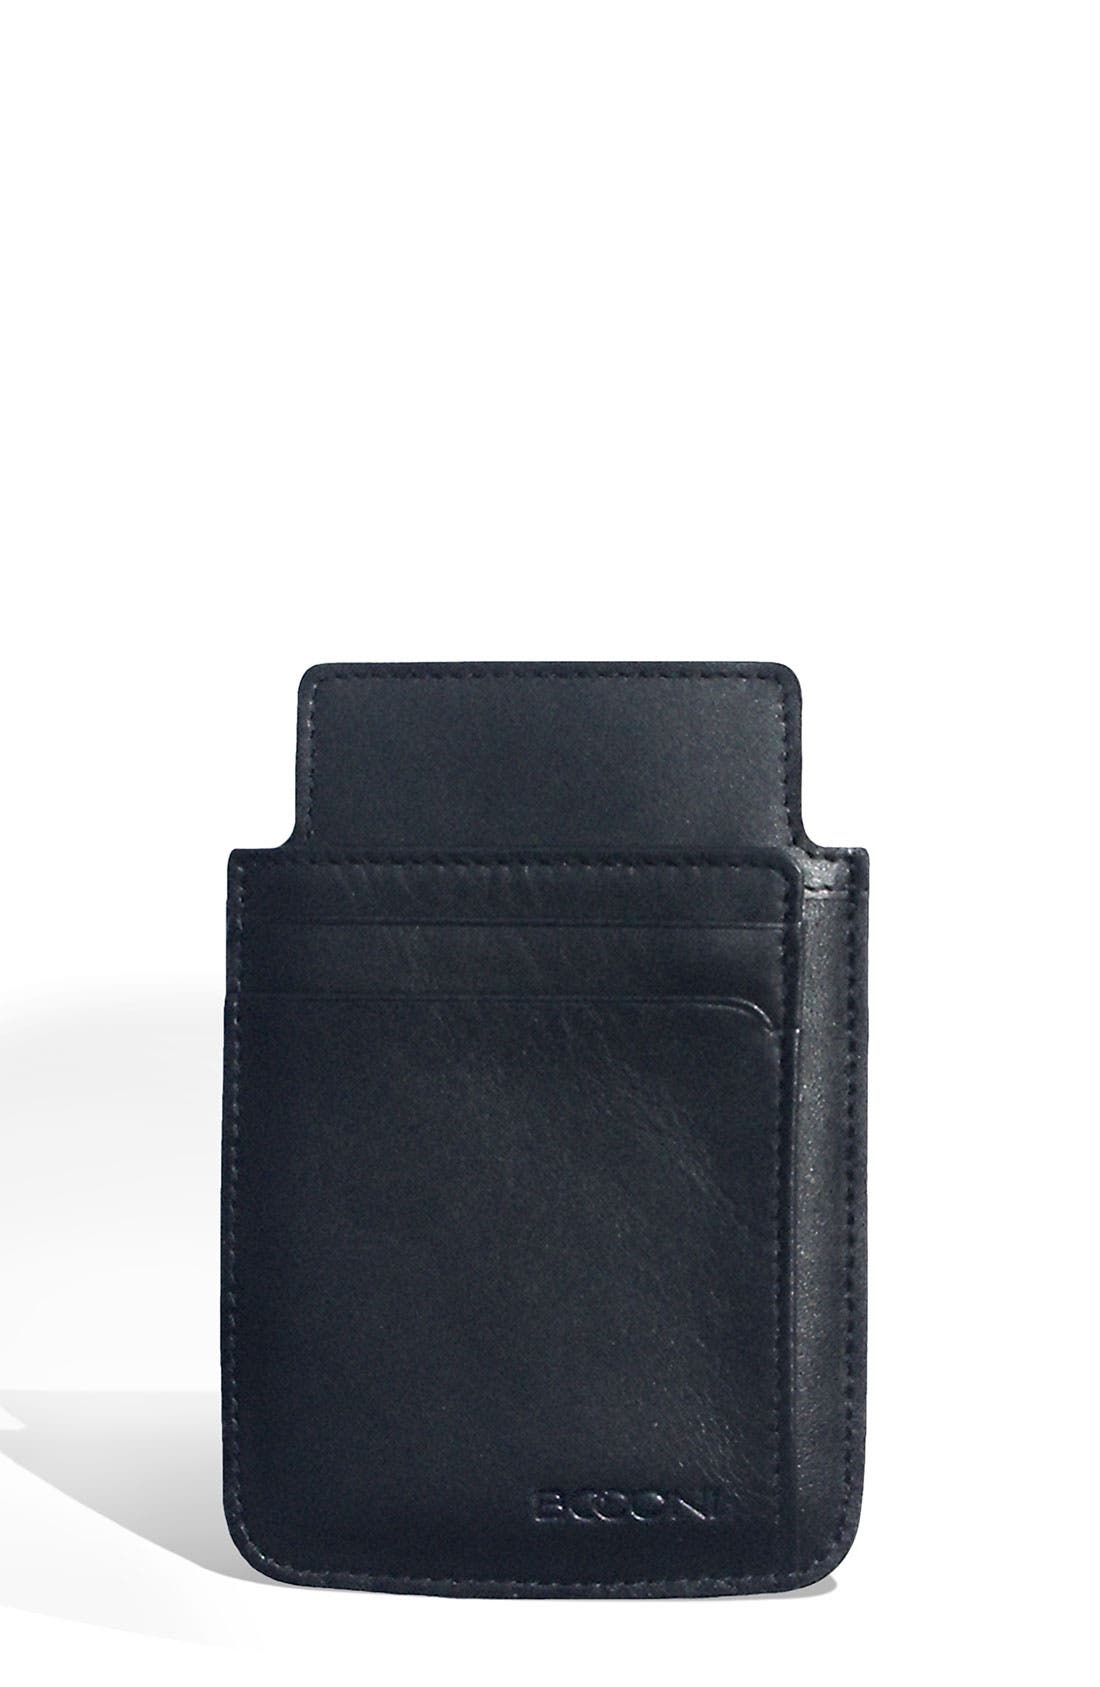 Main Image - Boconi Leather Smartphone Sheath